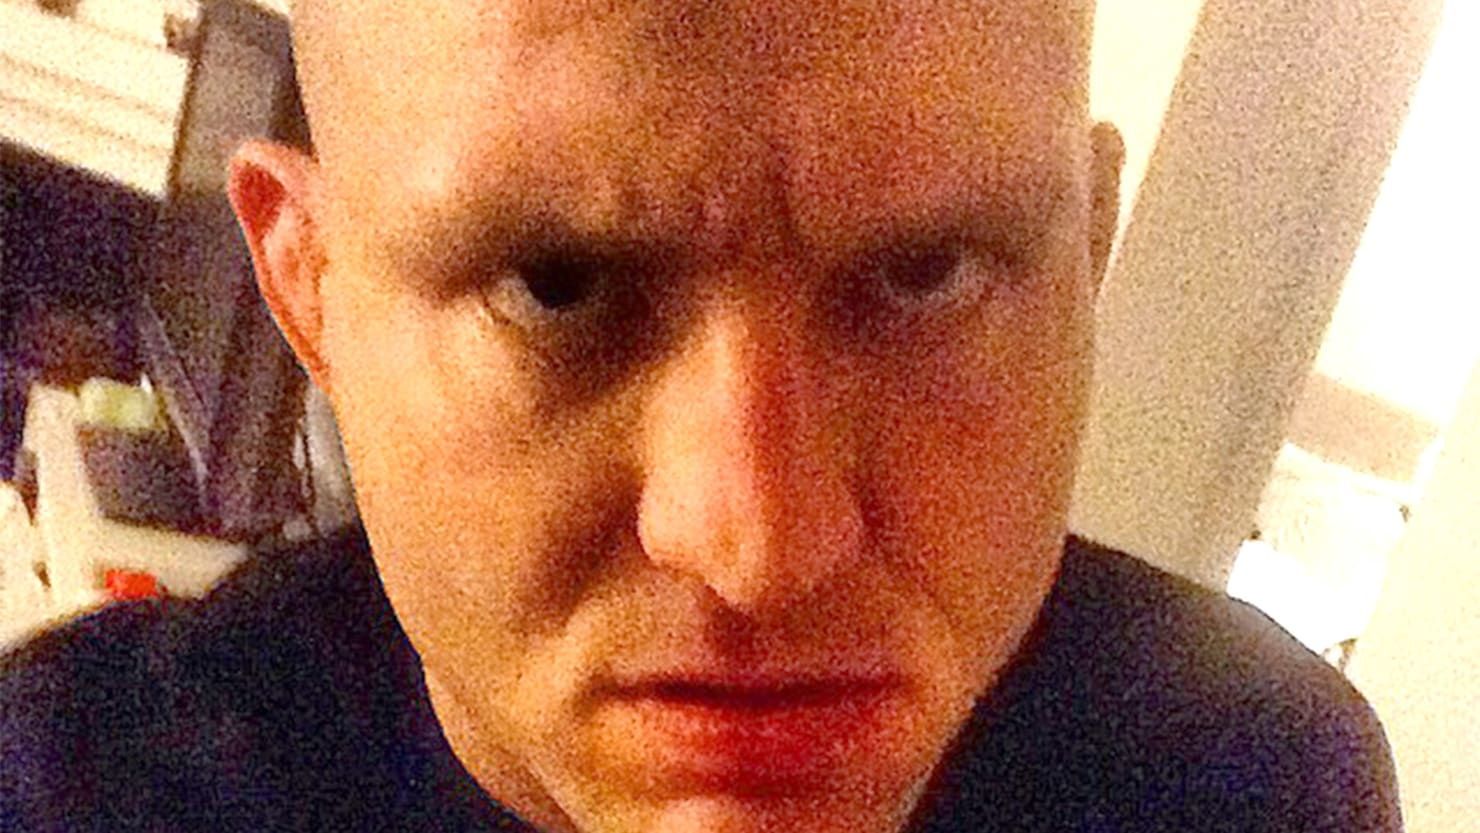 The MMA Fighters Have Gone Crazy: 'Mayhem' Miller the Latest in a Long Line of Psycho Pugilists